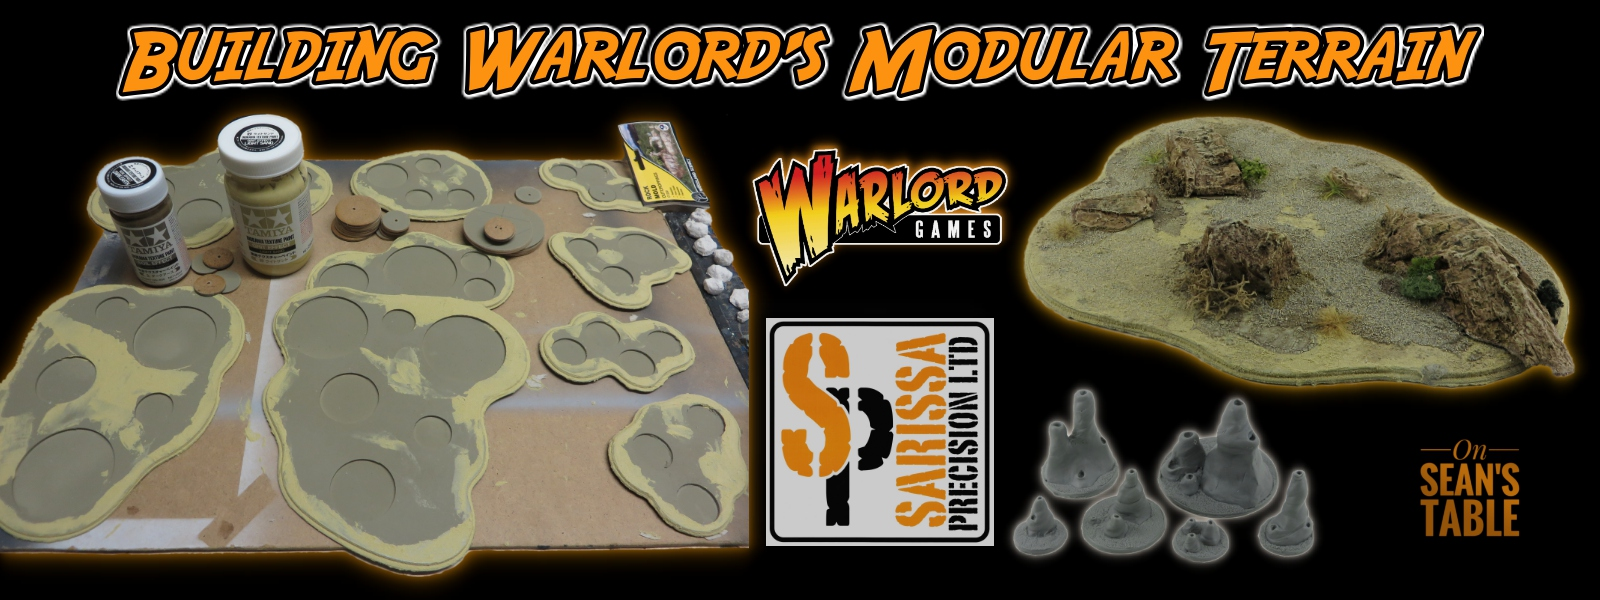 Warlord Sarissa Terrain Board Featured Image